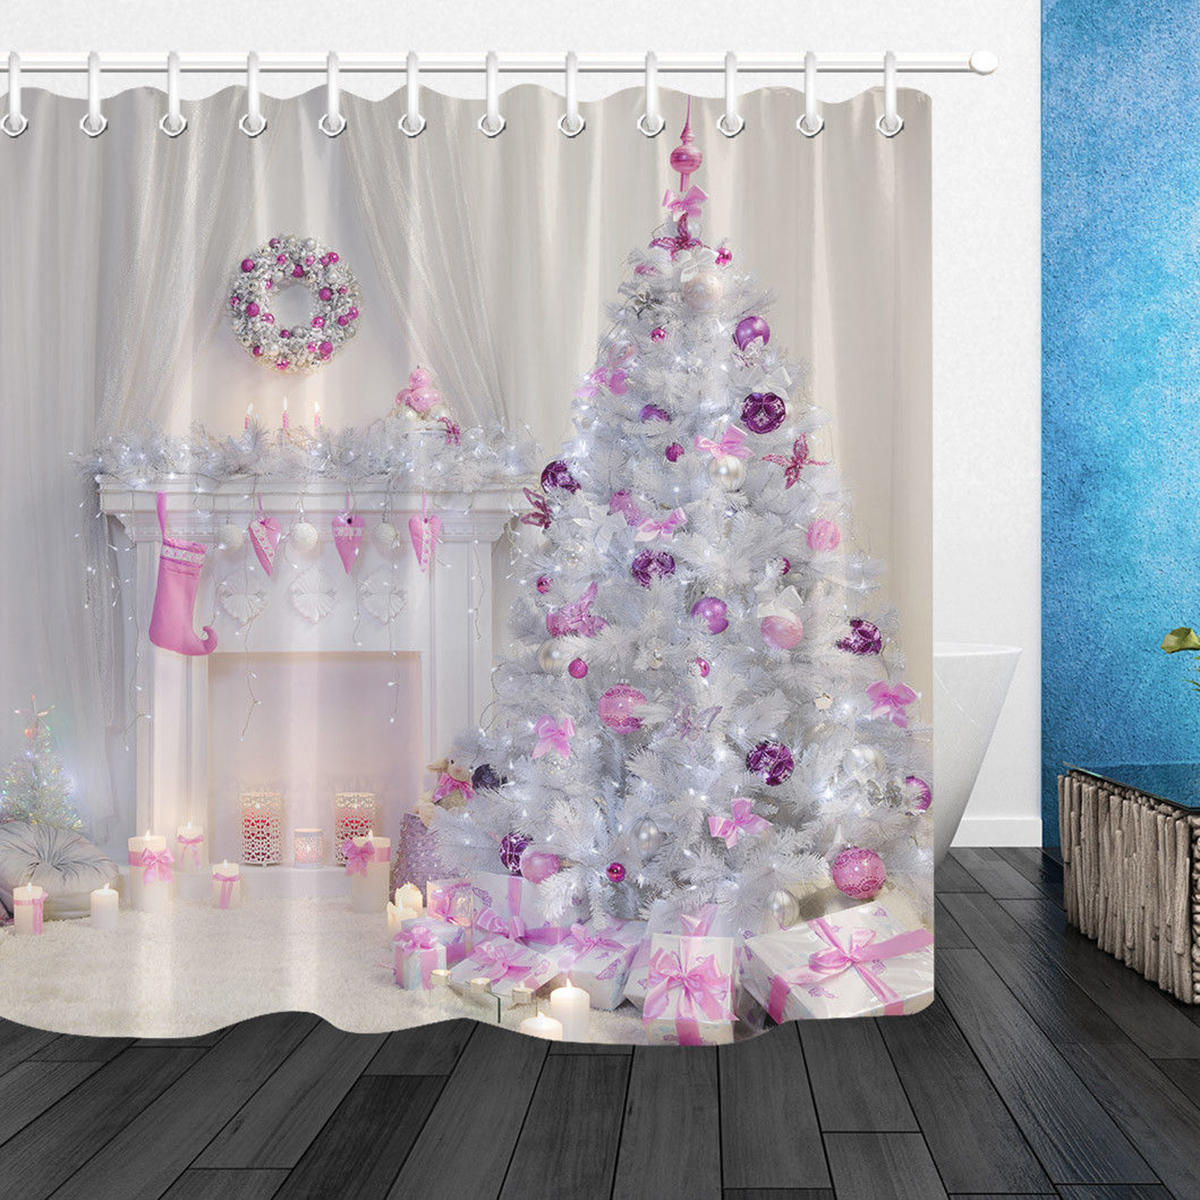 Christmas Tree Interior Xmas Fireplace In Pink Decorated Indoors Shower Curtain Bathroom Sets With Mat Bathroom Fabric For Bathtub Decor